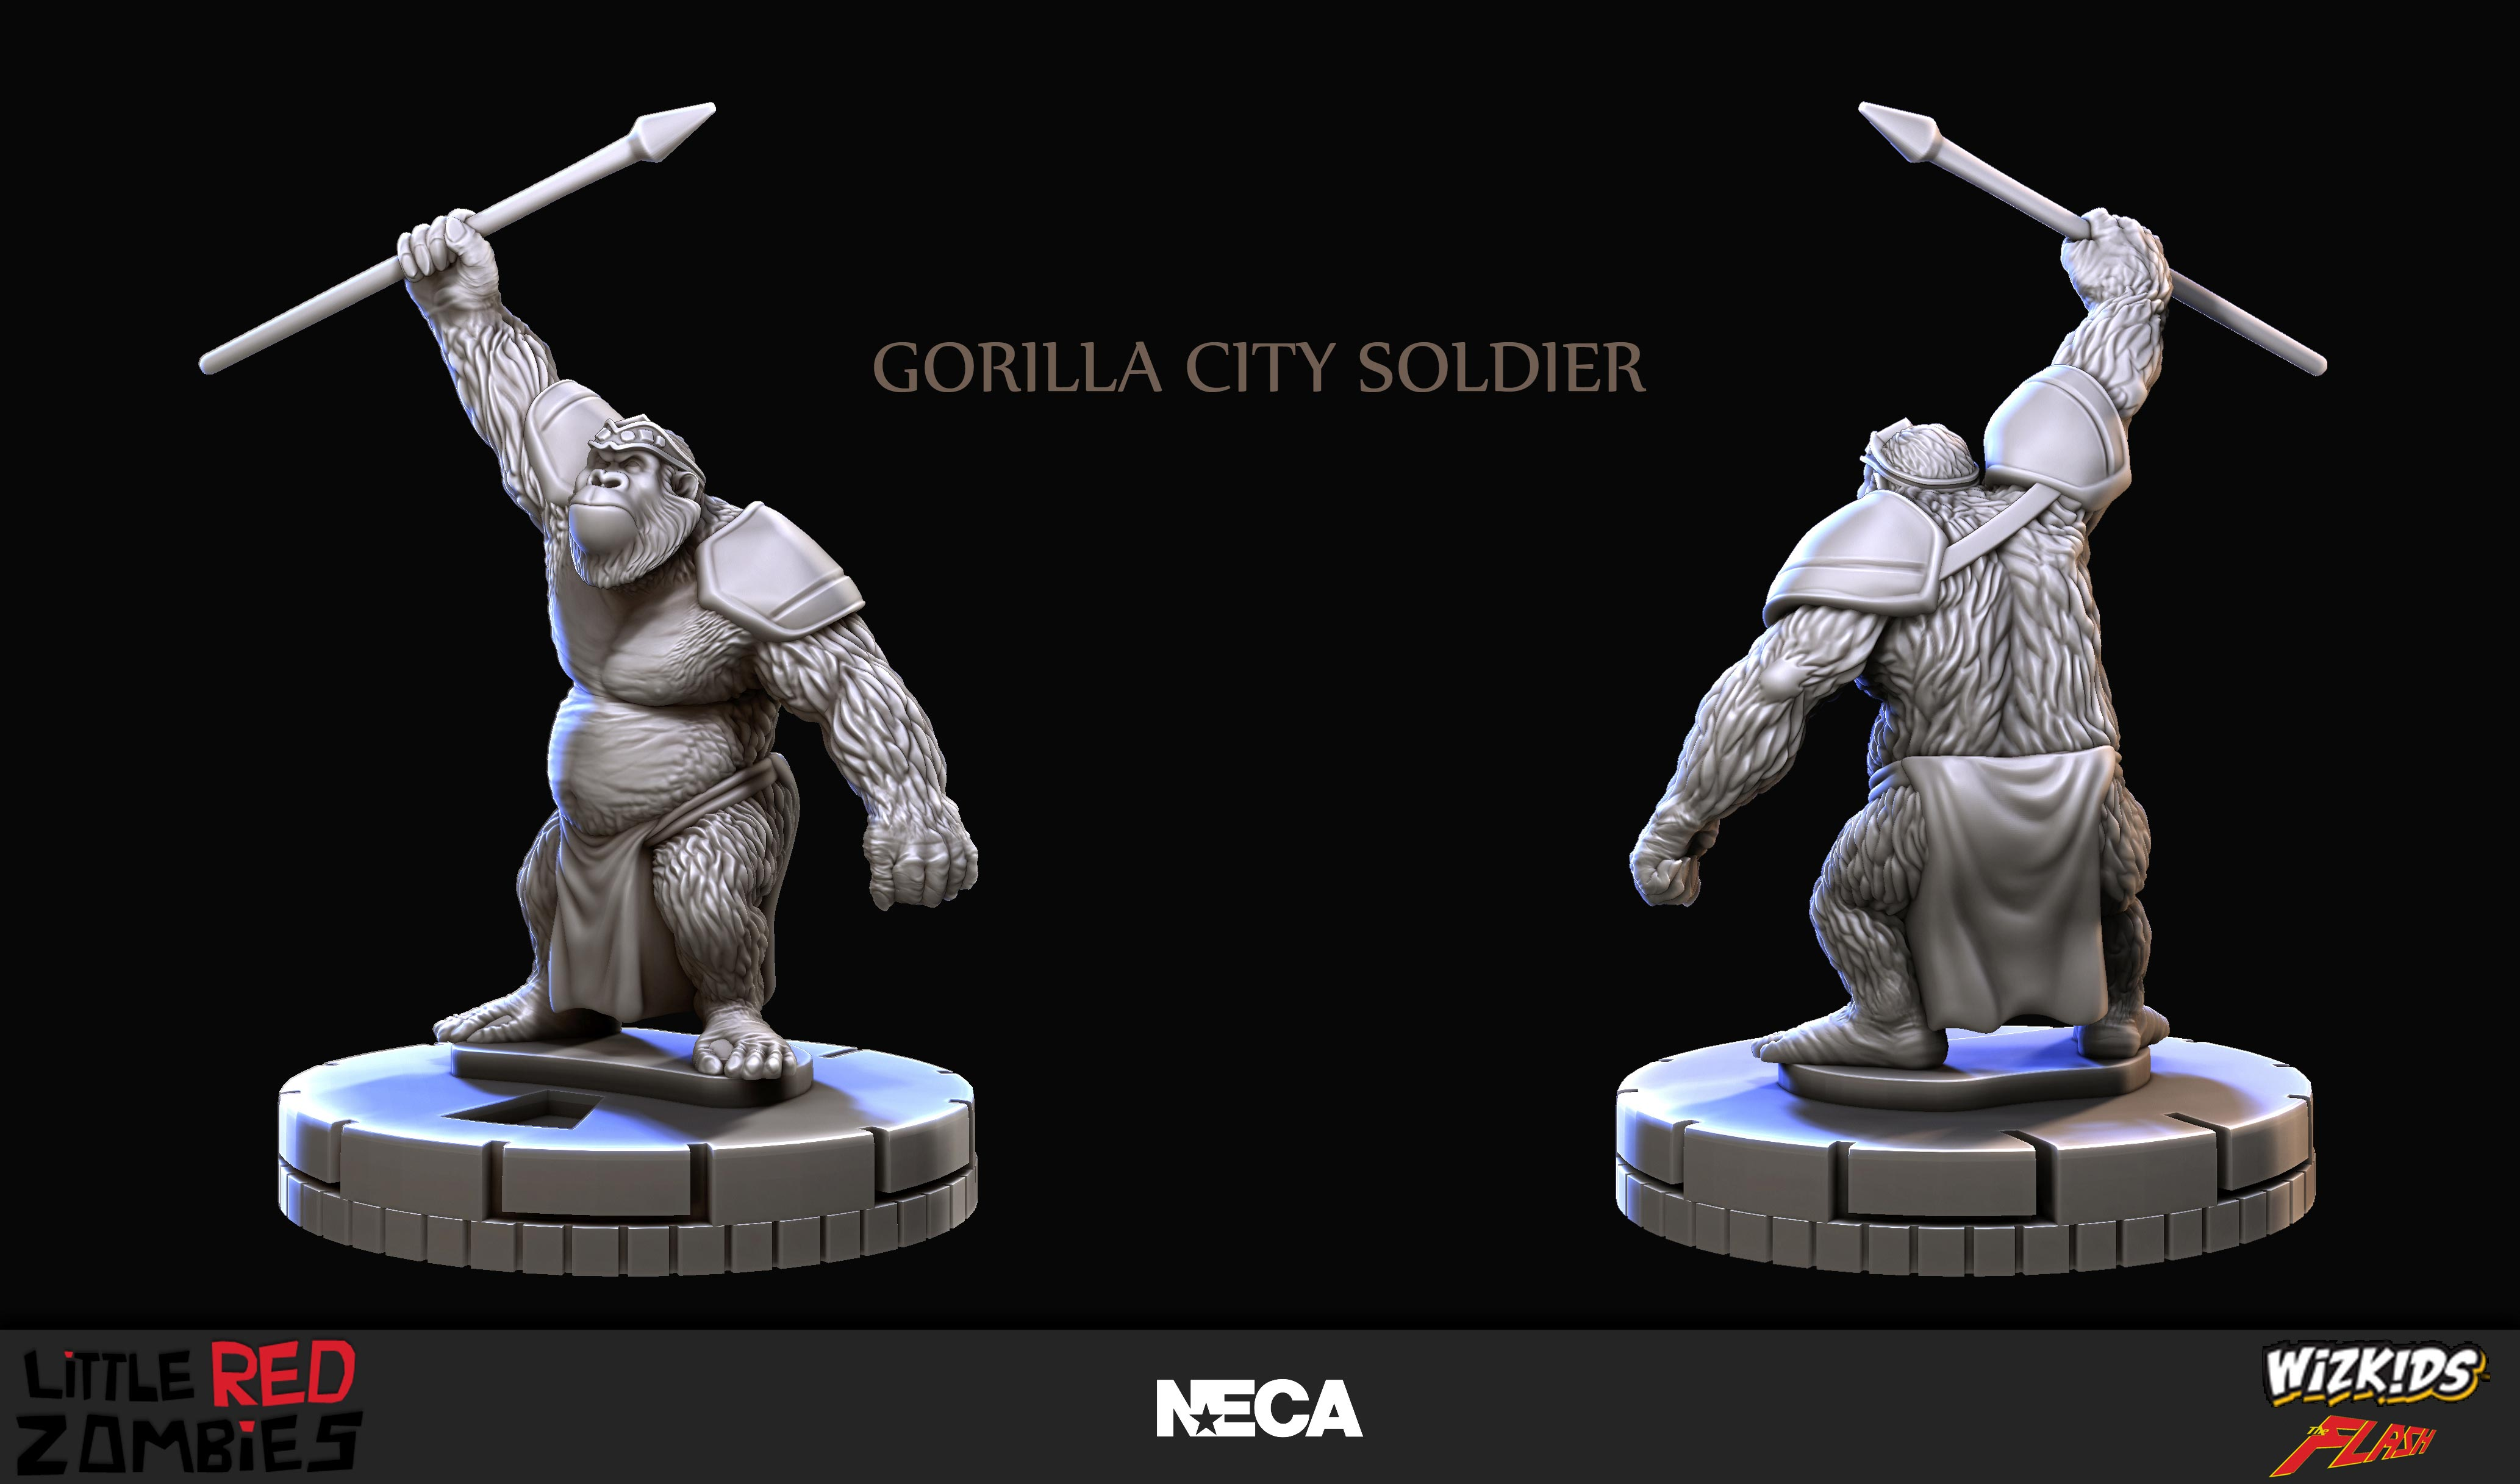 Flash_GorillaCitySoldier.jpg